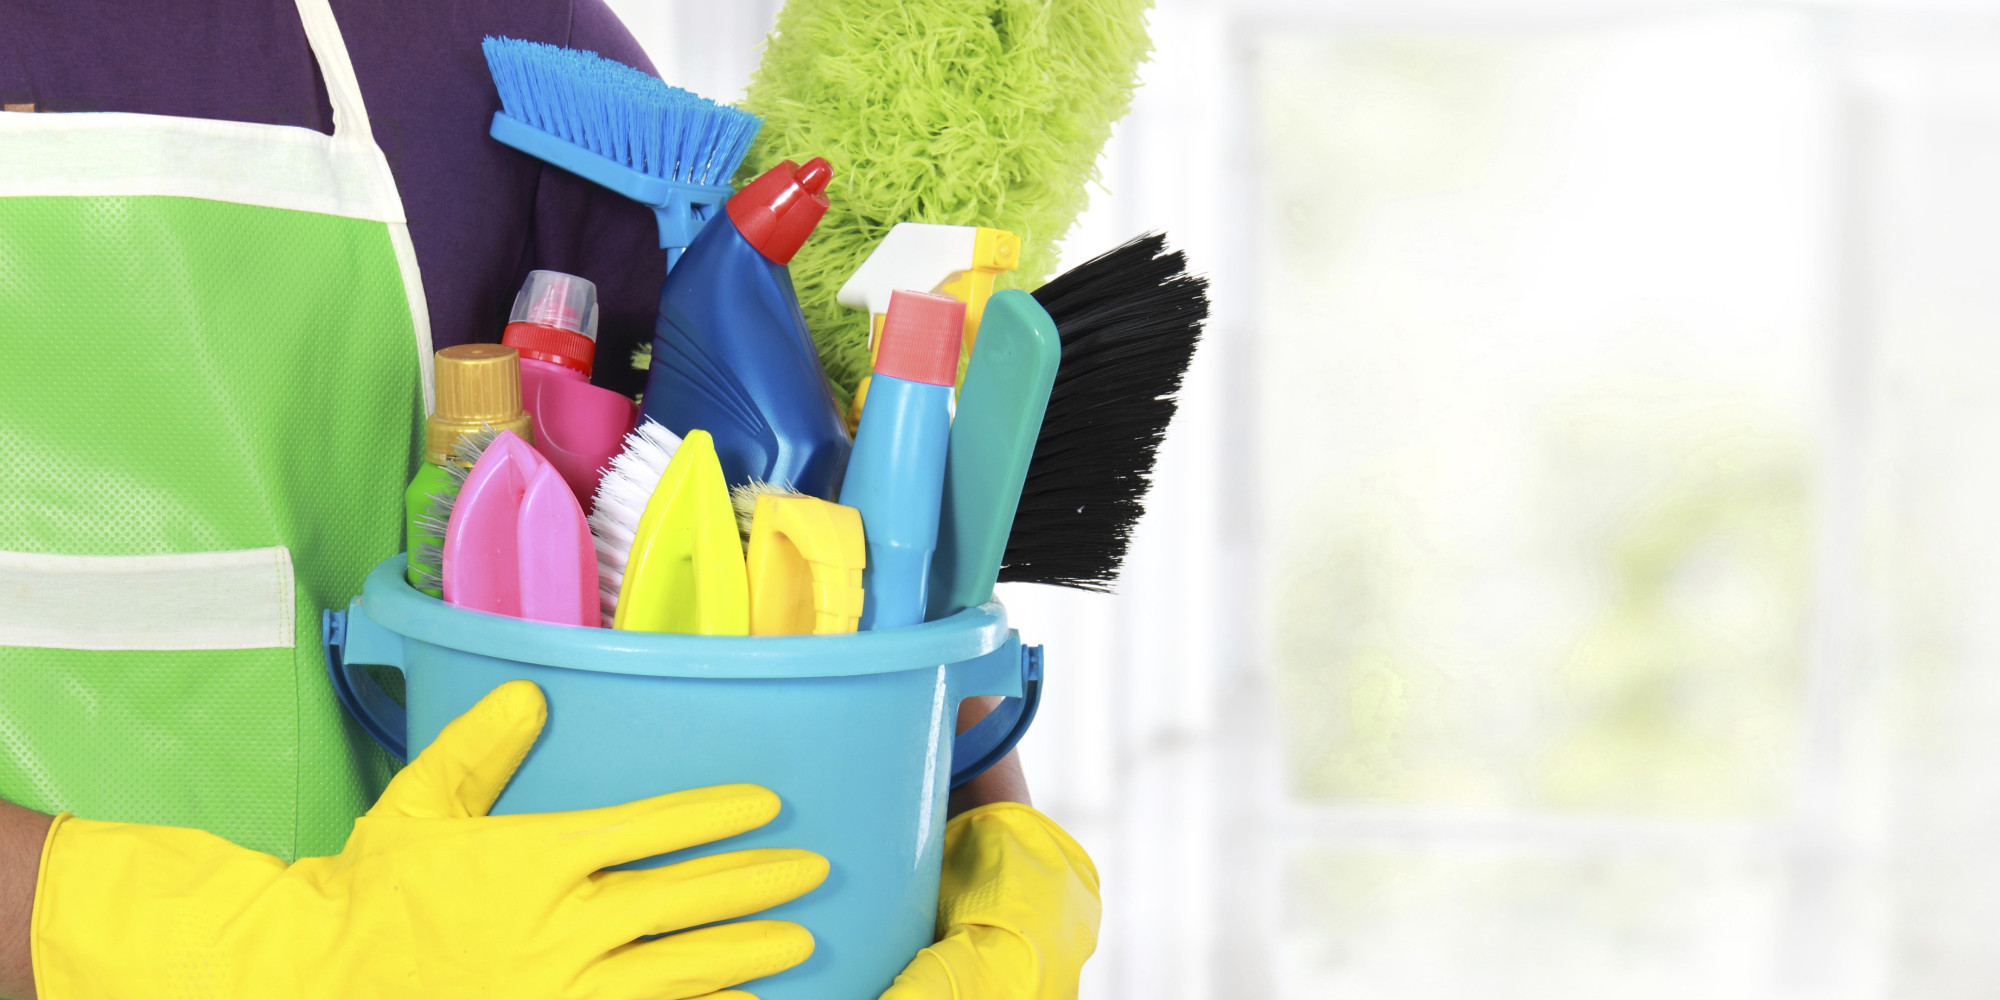 Hereu0027s How You Can Hire A Home Cleaning Service For The First Time |  HuffPost